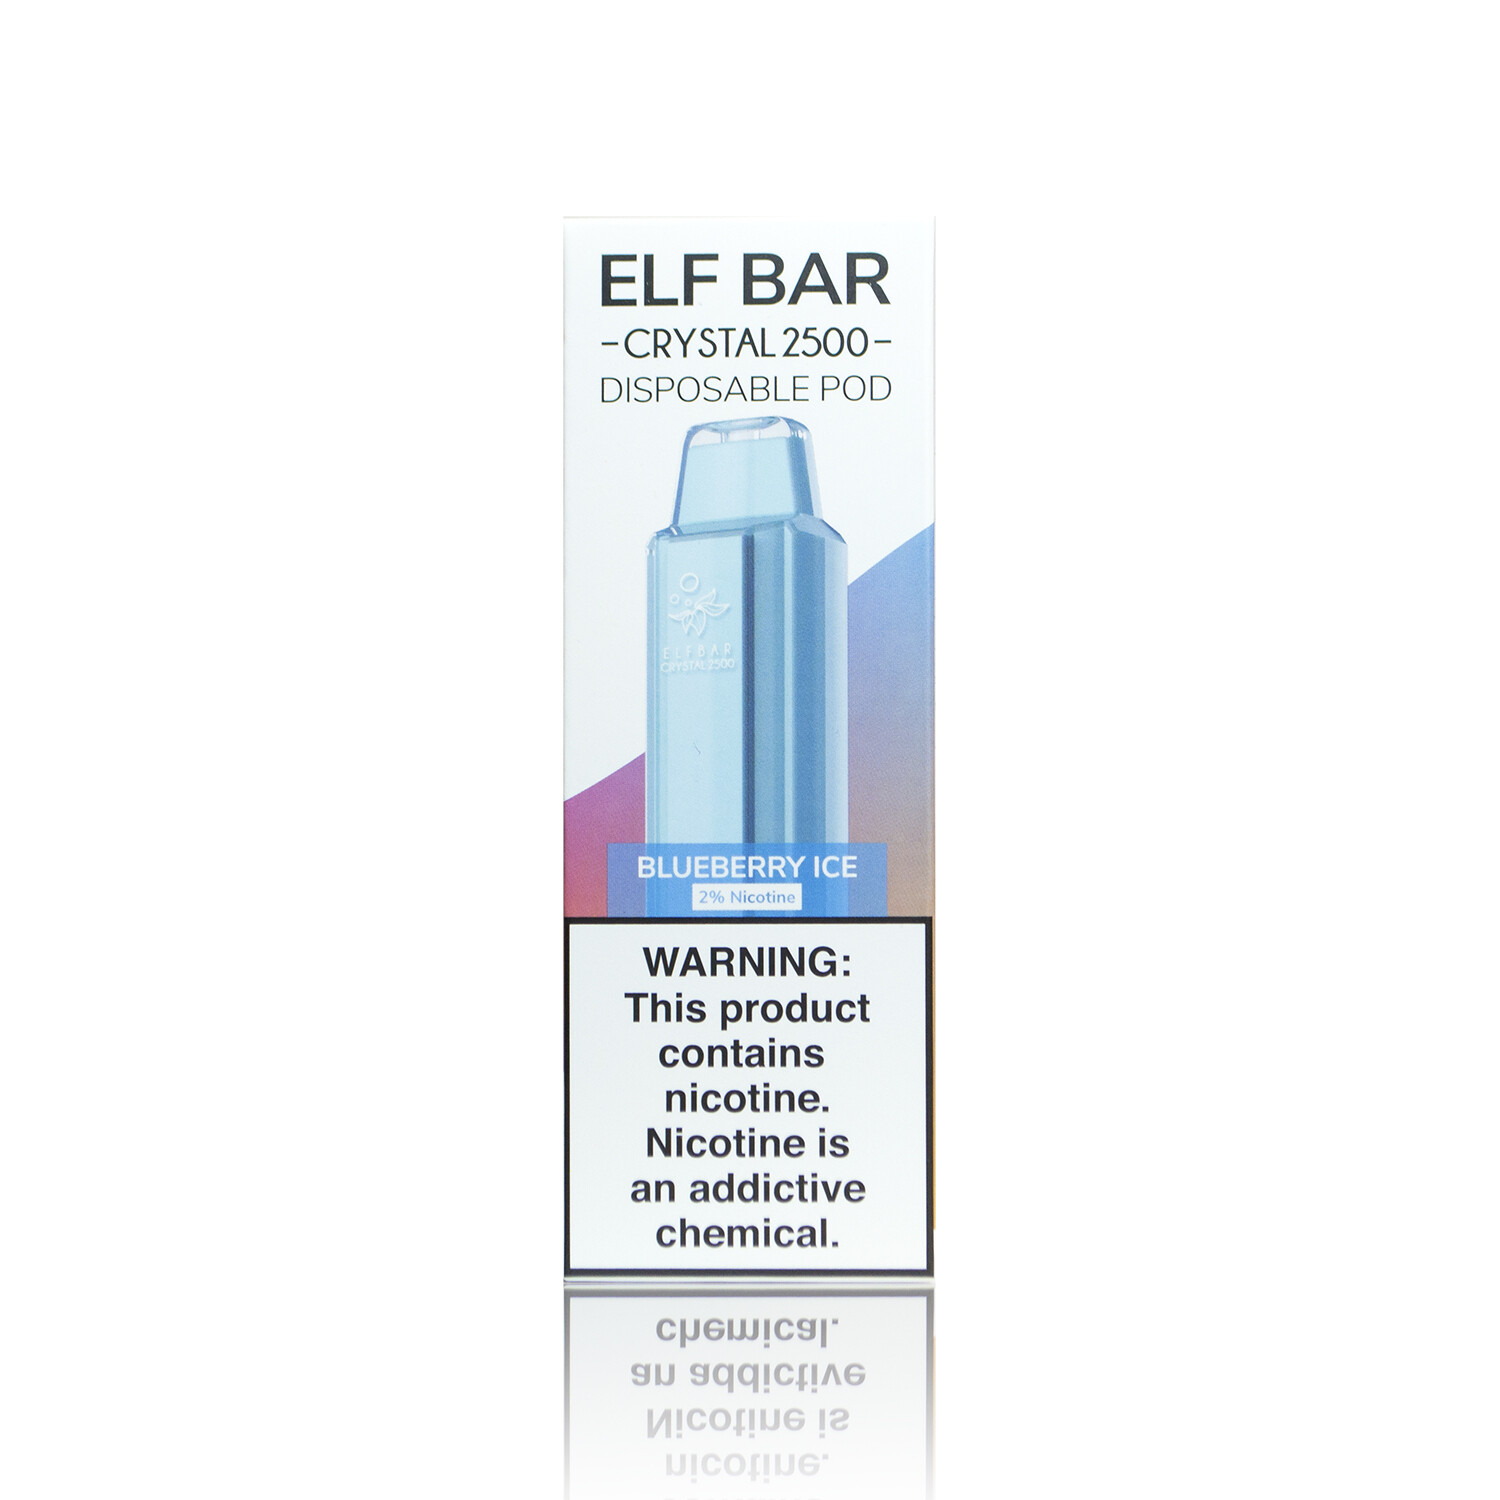 ELF BAR CRYSTAL 2500: BLUEBERRY ICE